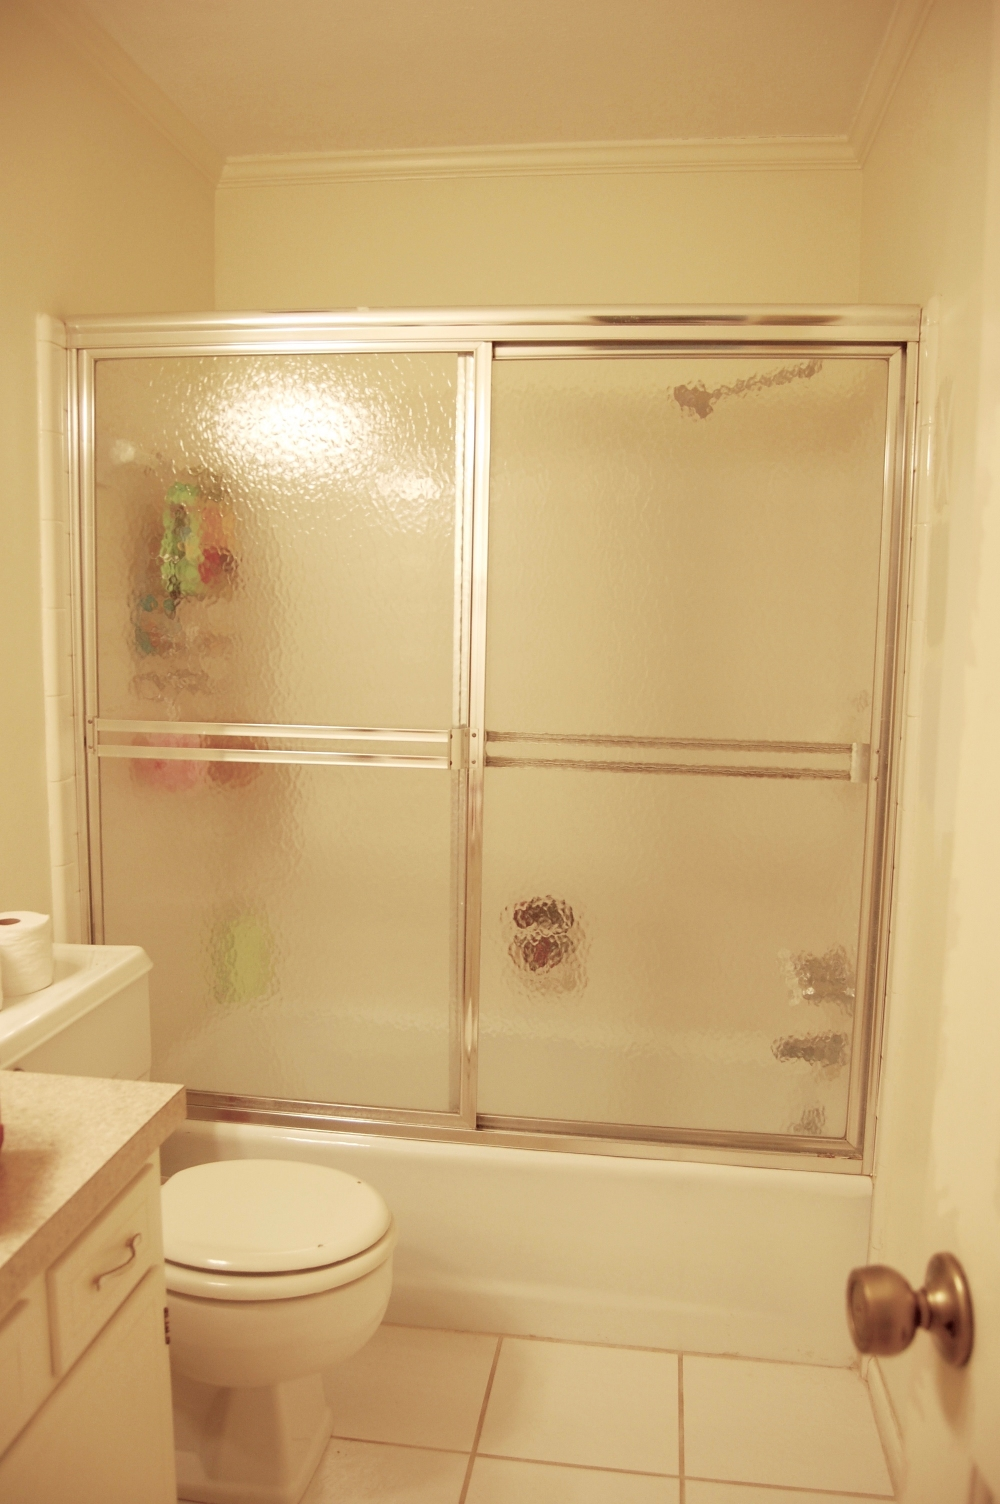 Before:  Ugly, gross, impossible to clean framed sliding shower doors.